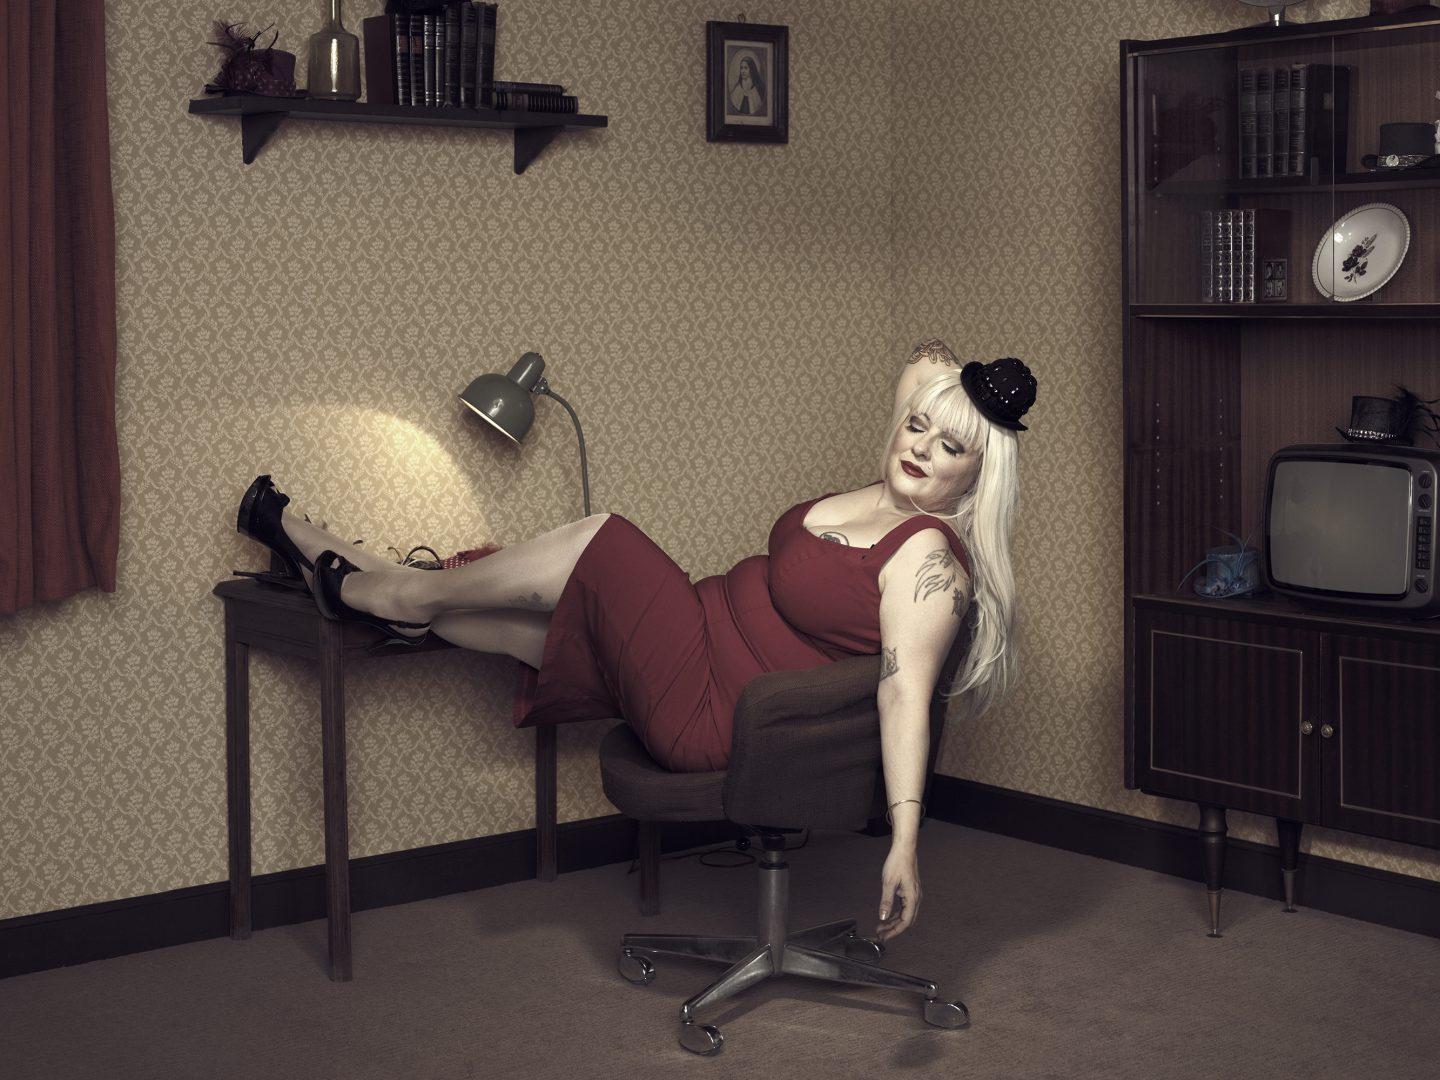 Woman in red dress sitting on chair in room 42 by Stefan Rappo